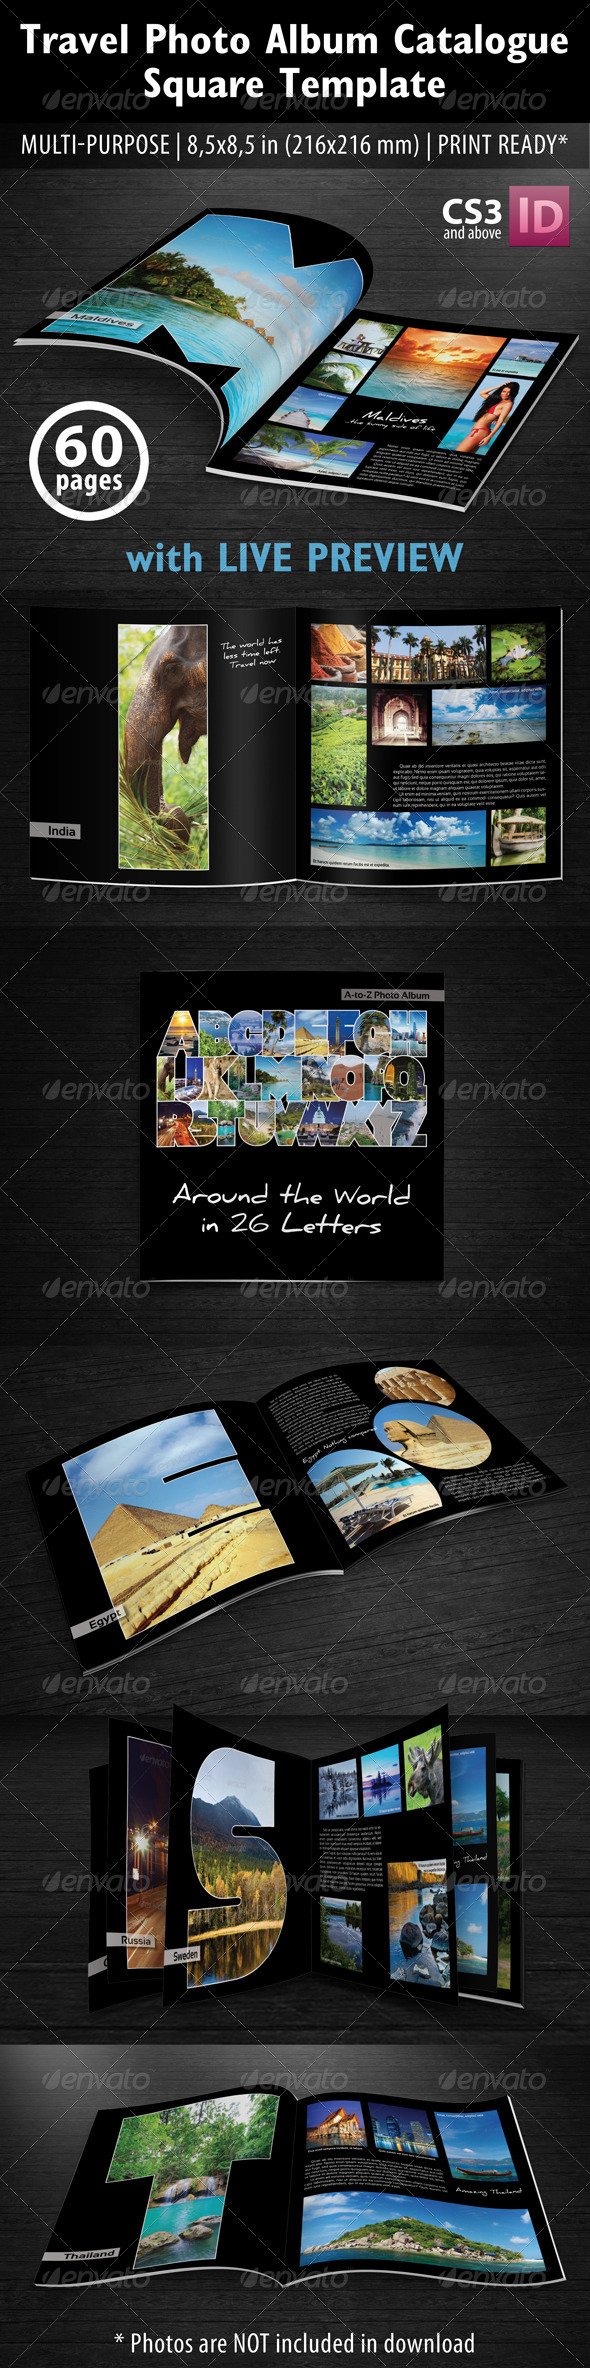 Travel Photo Album Catlog Square Template